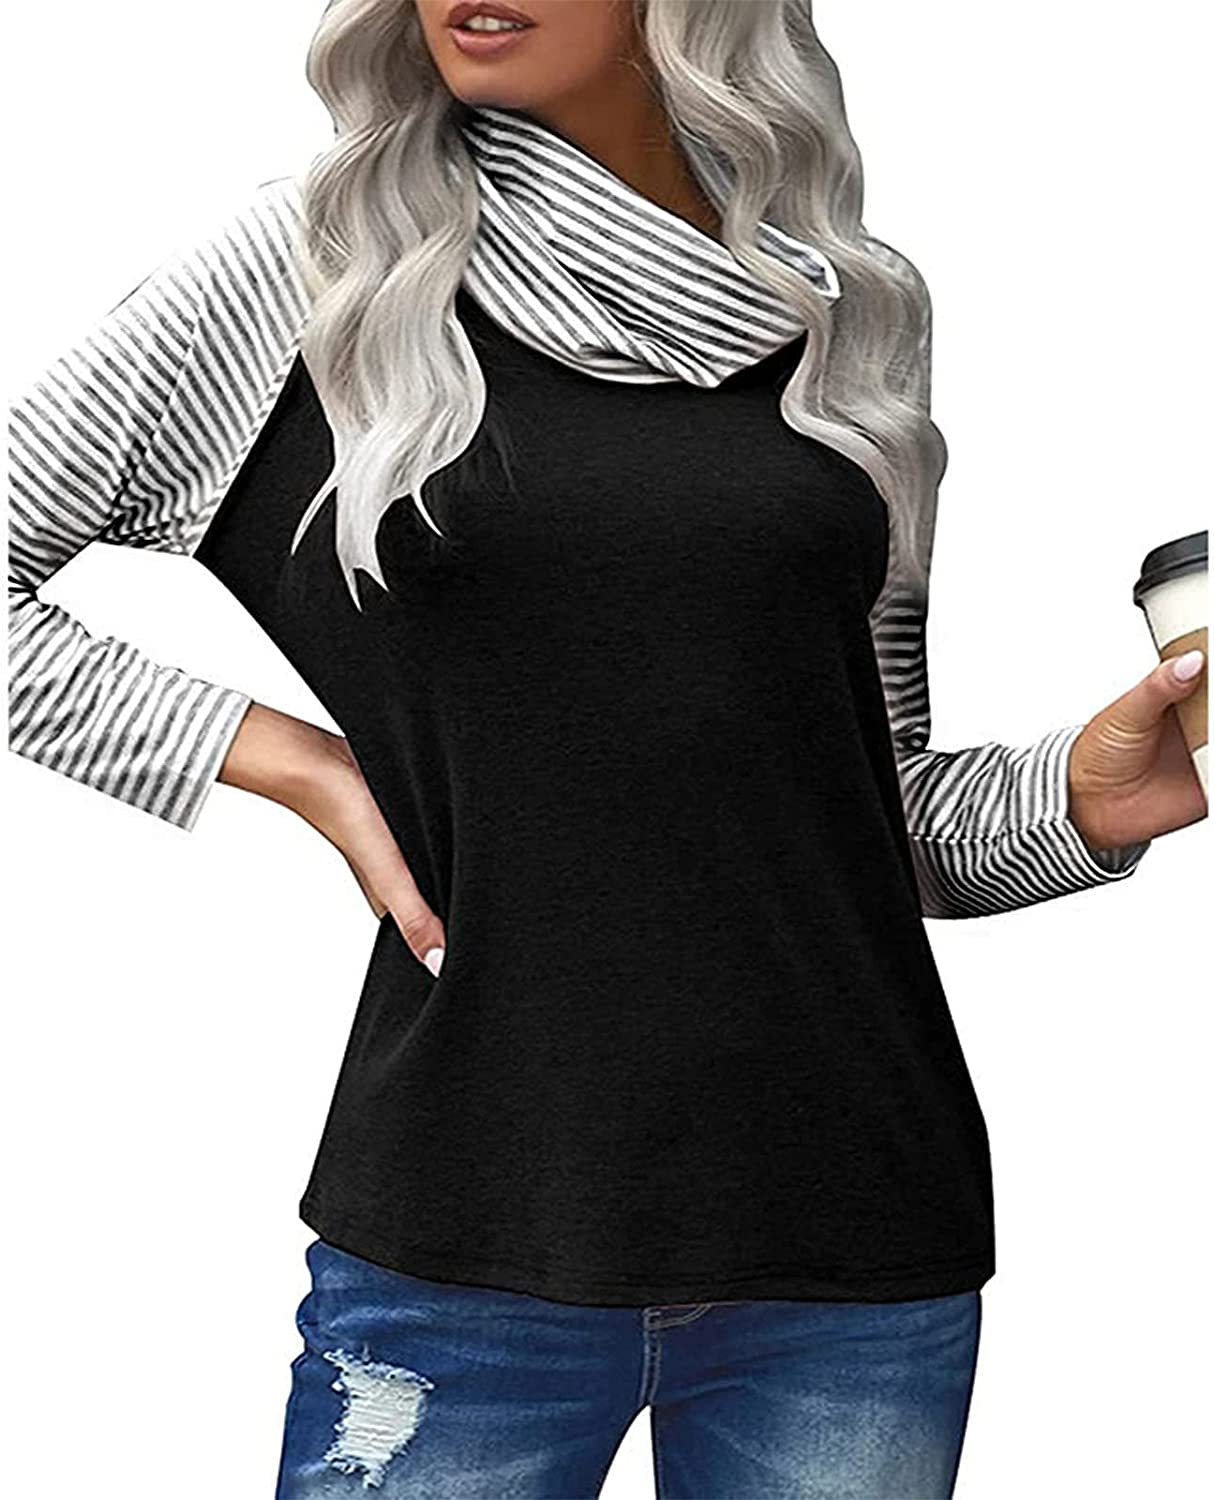 Womens Sweatshirt Crewneck Long Sleeve Turtleneck Striped Casual Loose Classical Fit Lightweight Pullover for Women